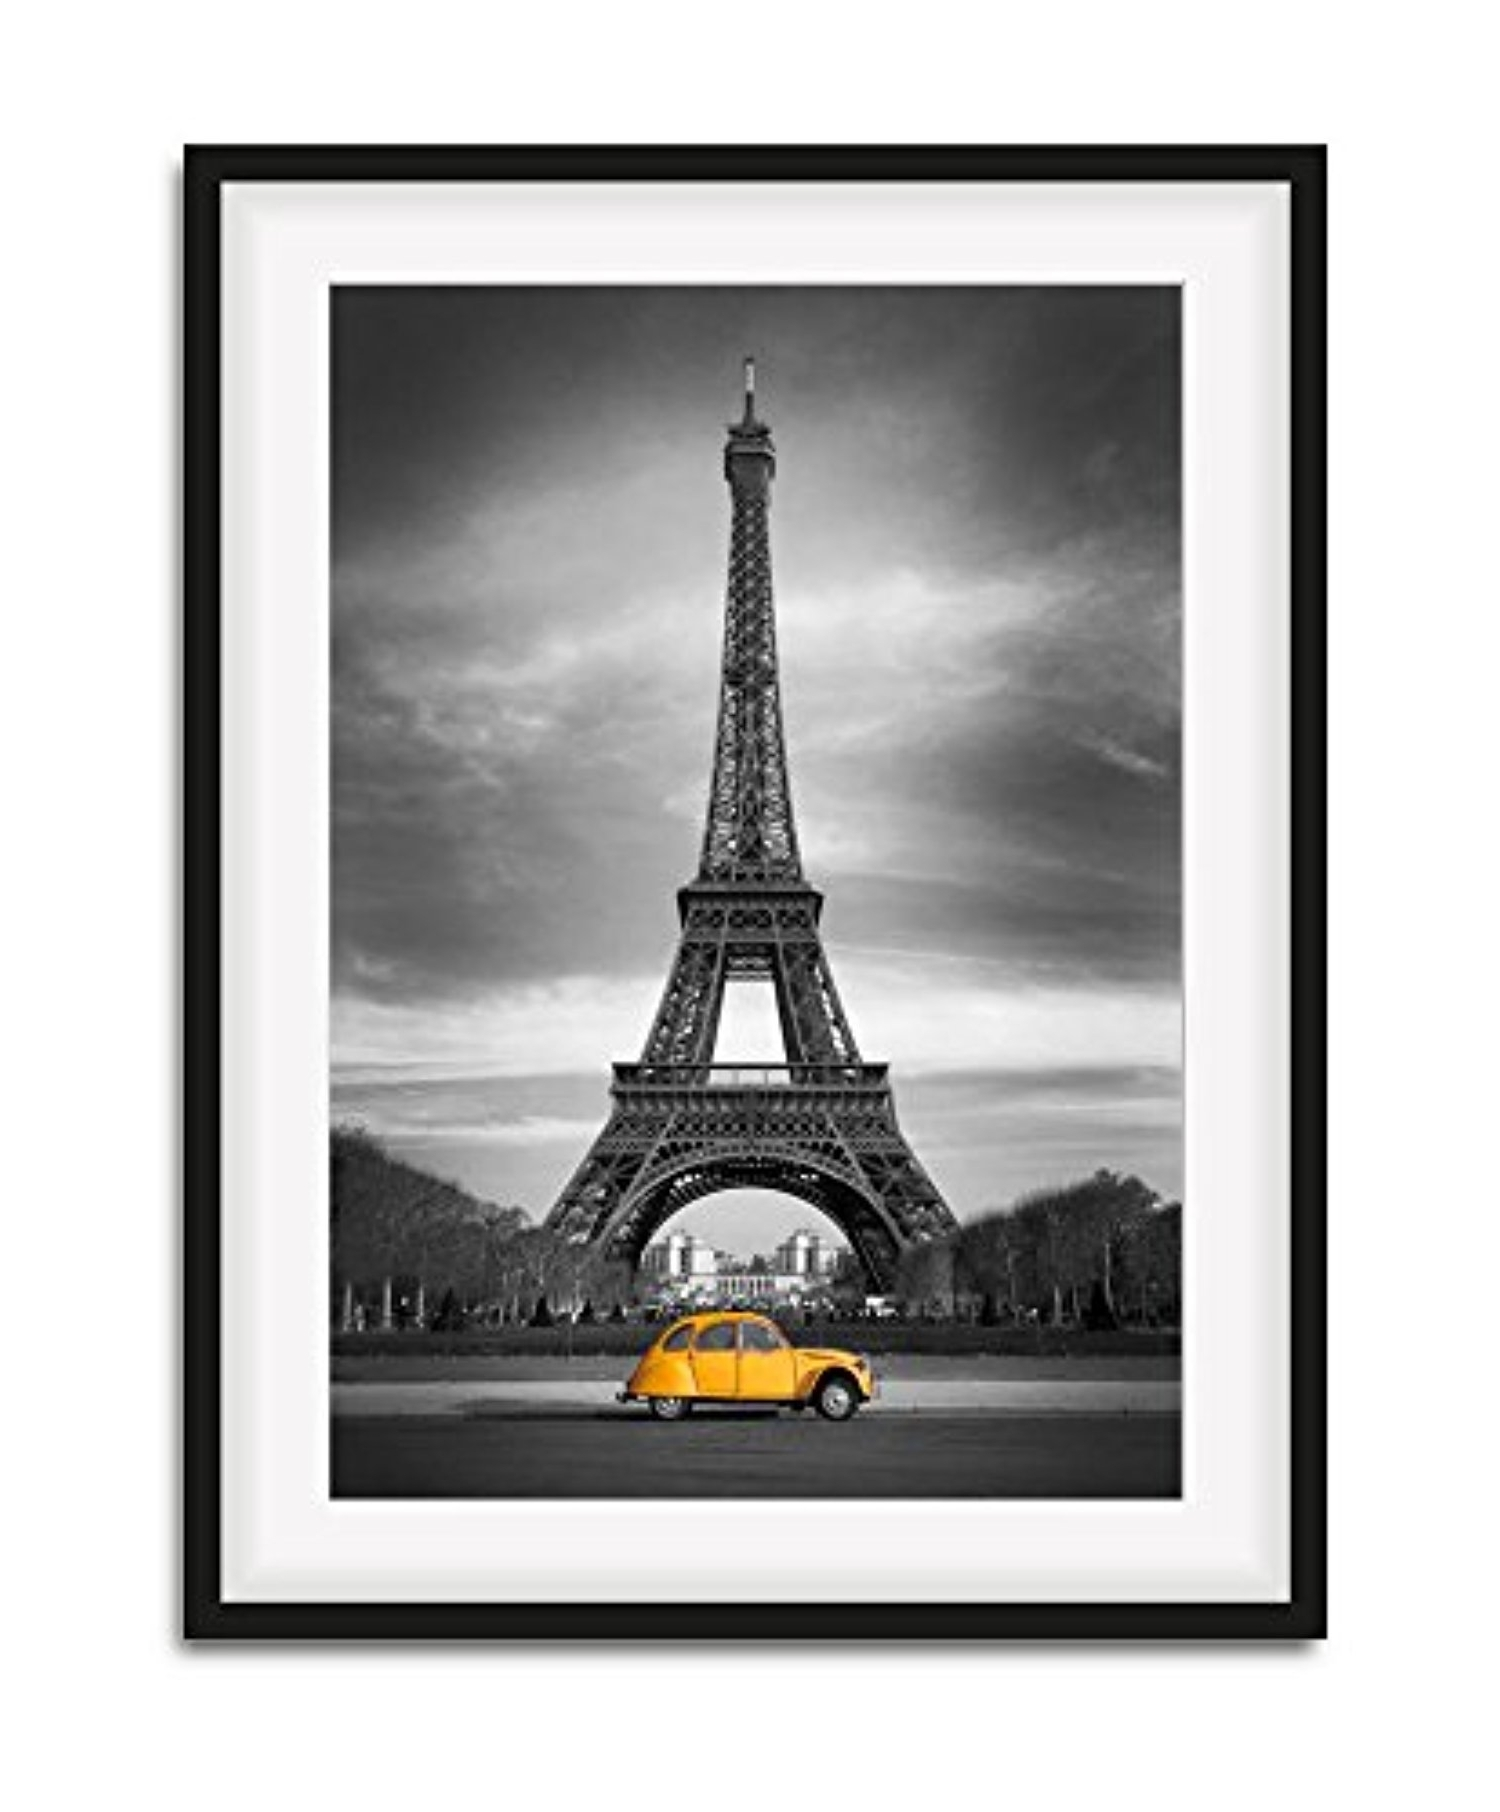 Eiffel Tower Wall Hanging Art With Popular Modern Eiffel Tower And Yellow Car Canvas Picture Wall Art Print (Gallery 7 of 15)